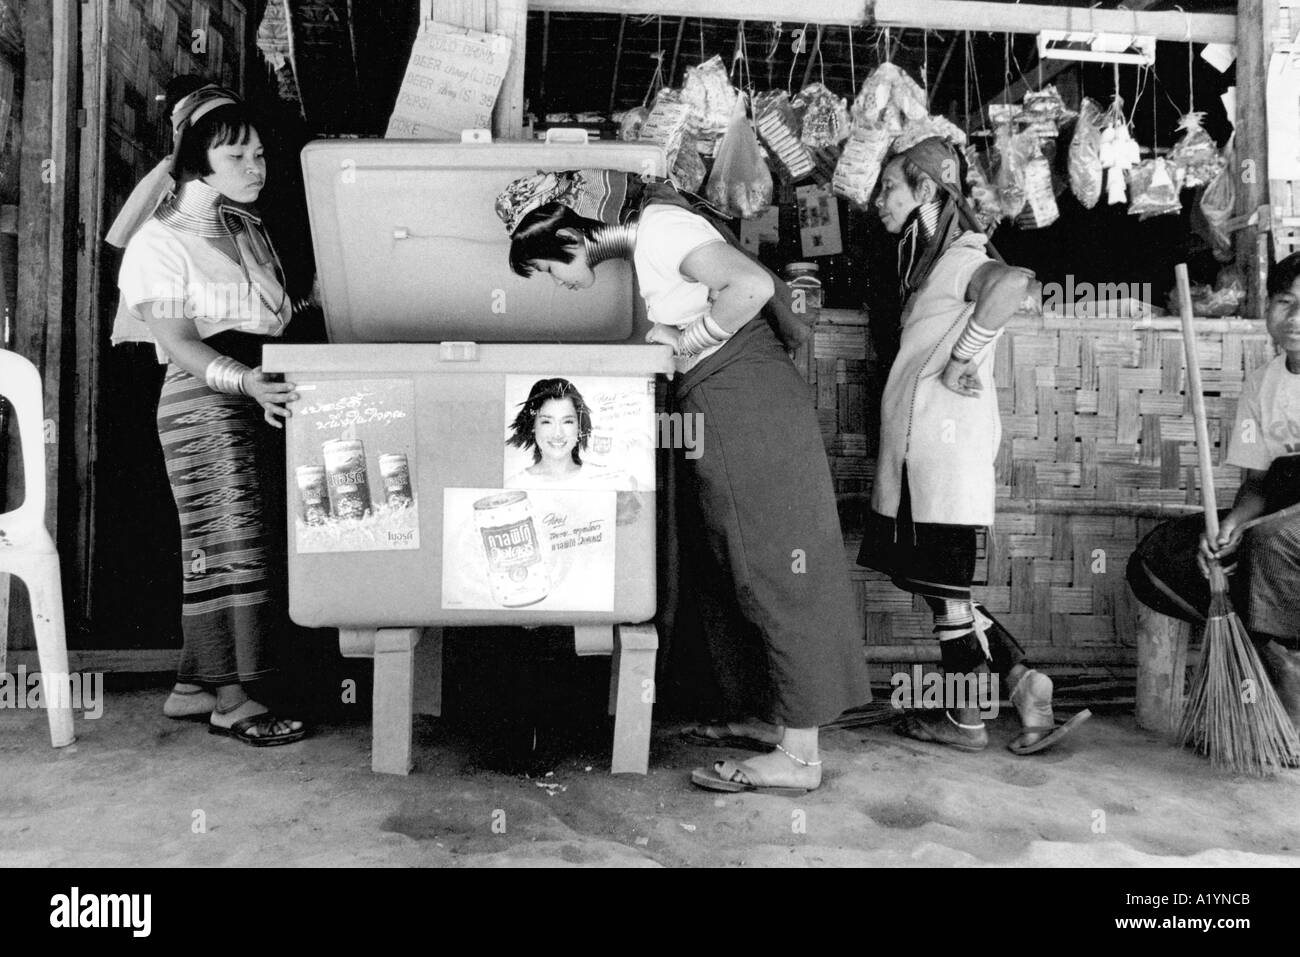 Long necked women looking into a chest in front of a local shop - Stock Image